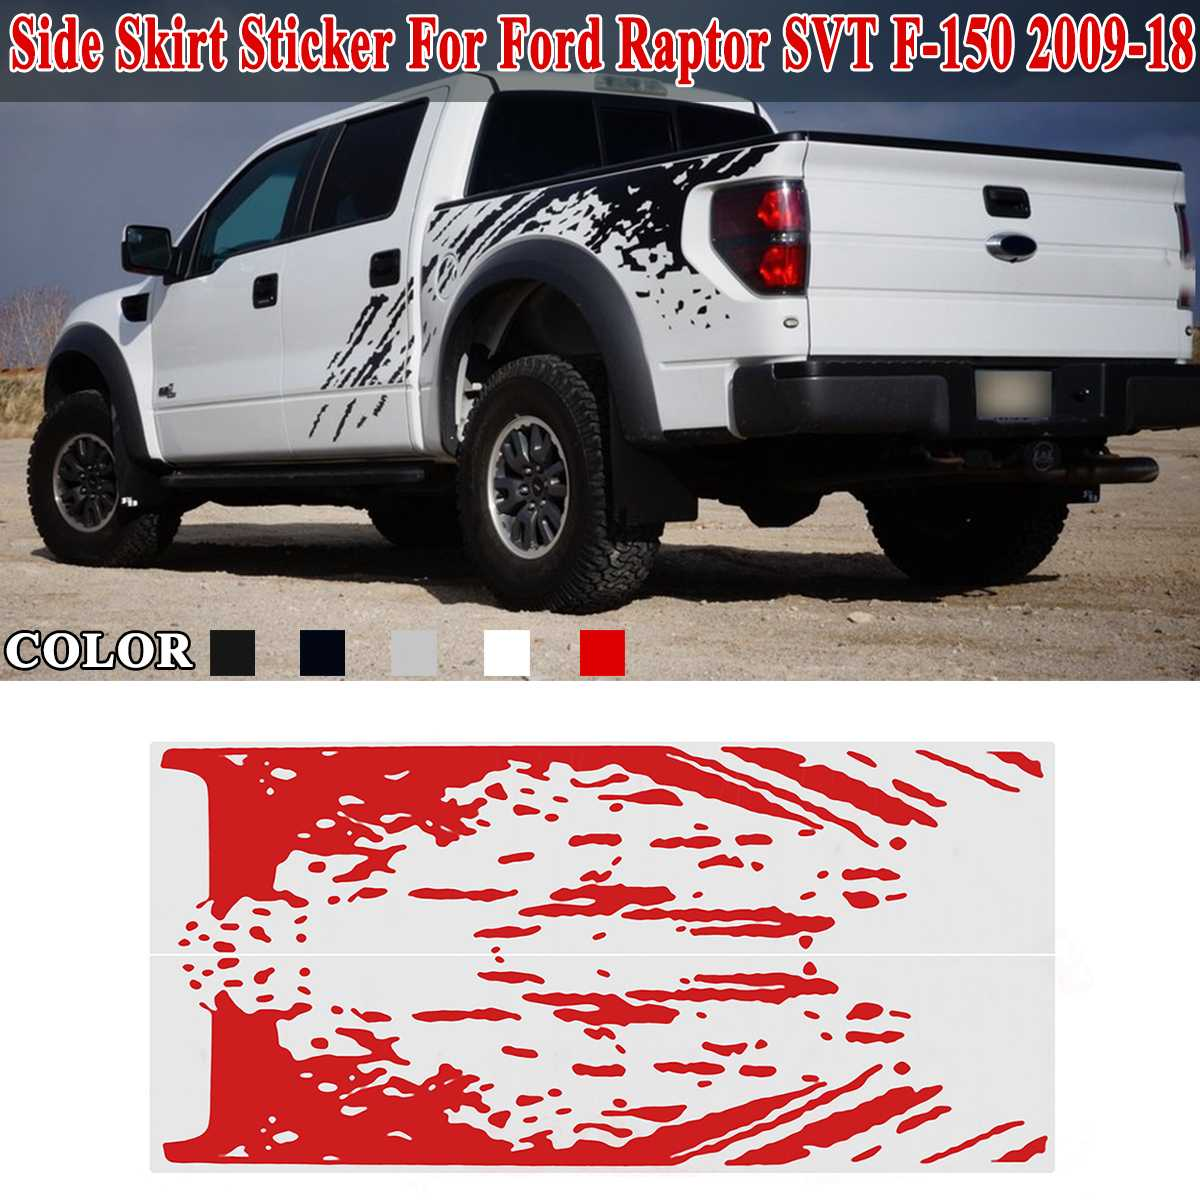 Side Bed Mud Splash Kit Decal <font><b>Sticker</b></font> Vinyl For <font><b>Ford</b></font> <font><b>Raptor</b></font> SVT F-150 2009-2018 Trunk <font><b>Sticker</b></font> Door Side Body Decal Car Styling image